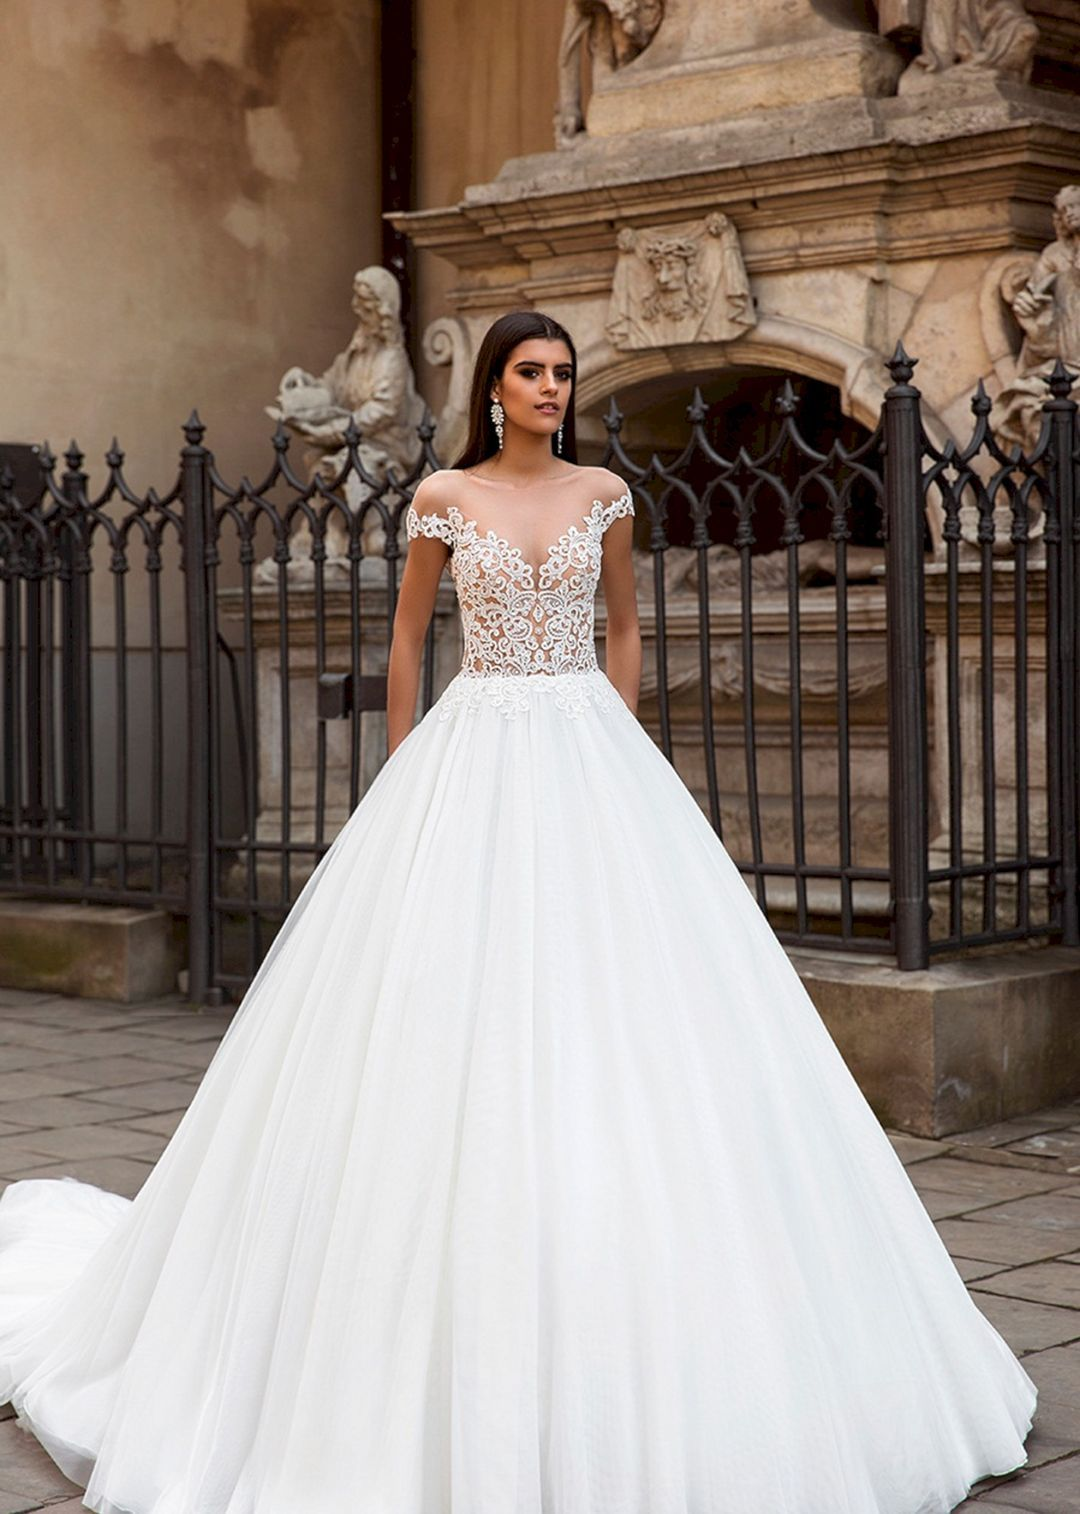 Say Yes To The Dress Super Beautiful Wedding Dresses